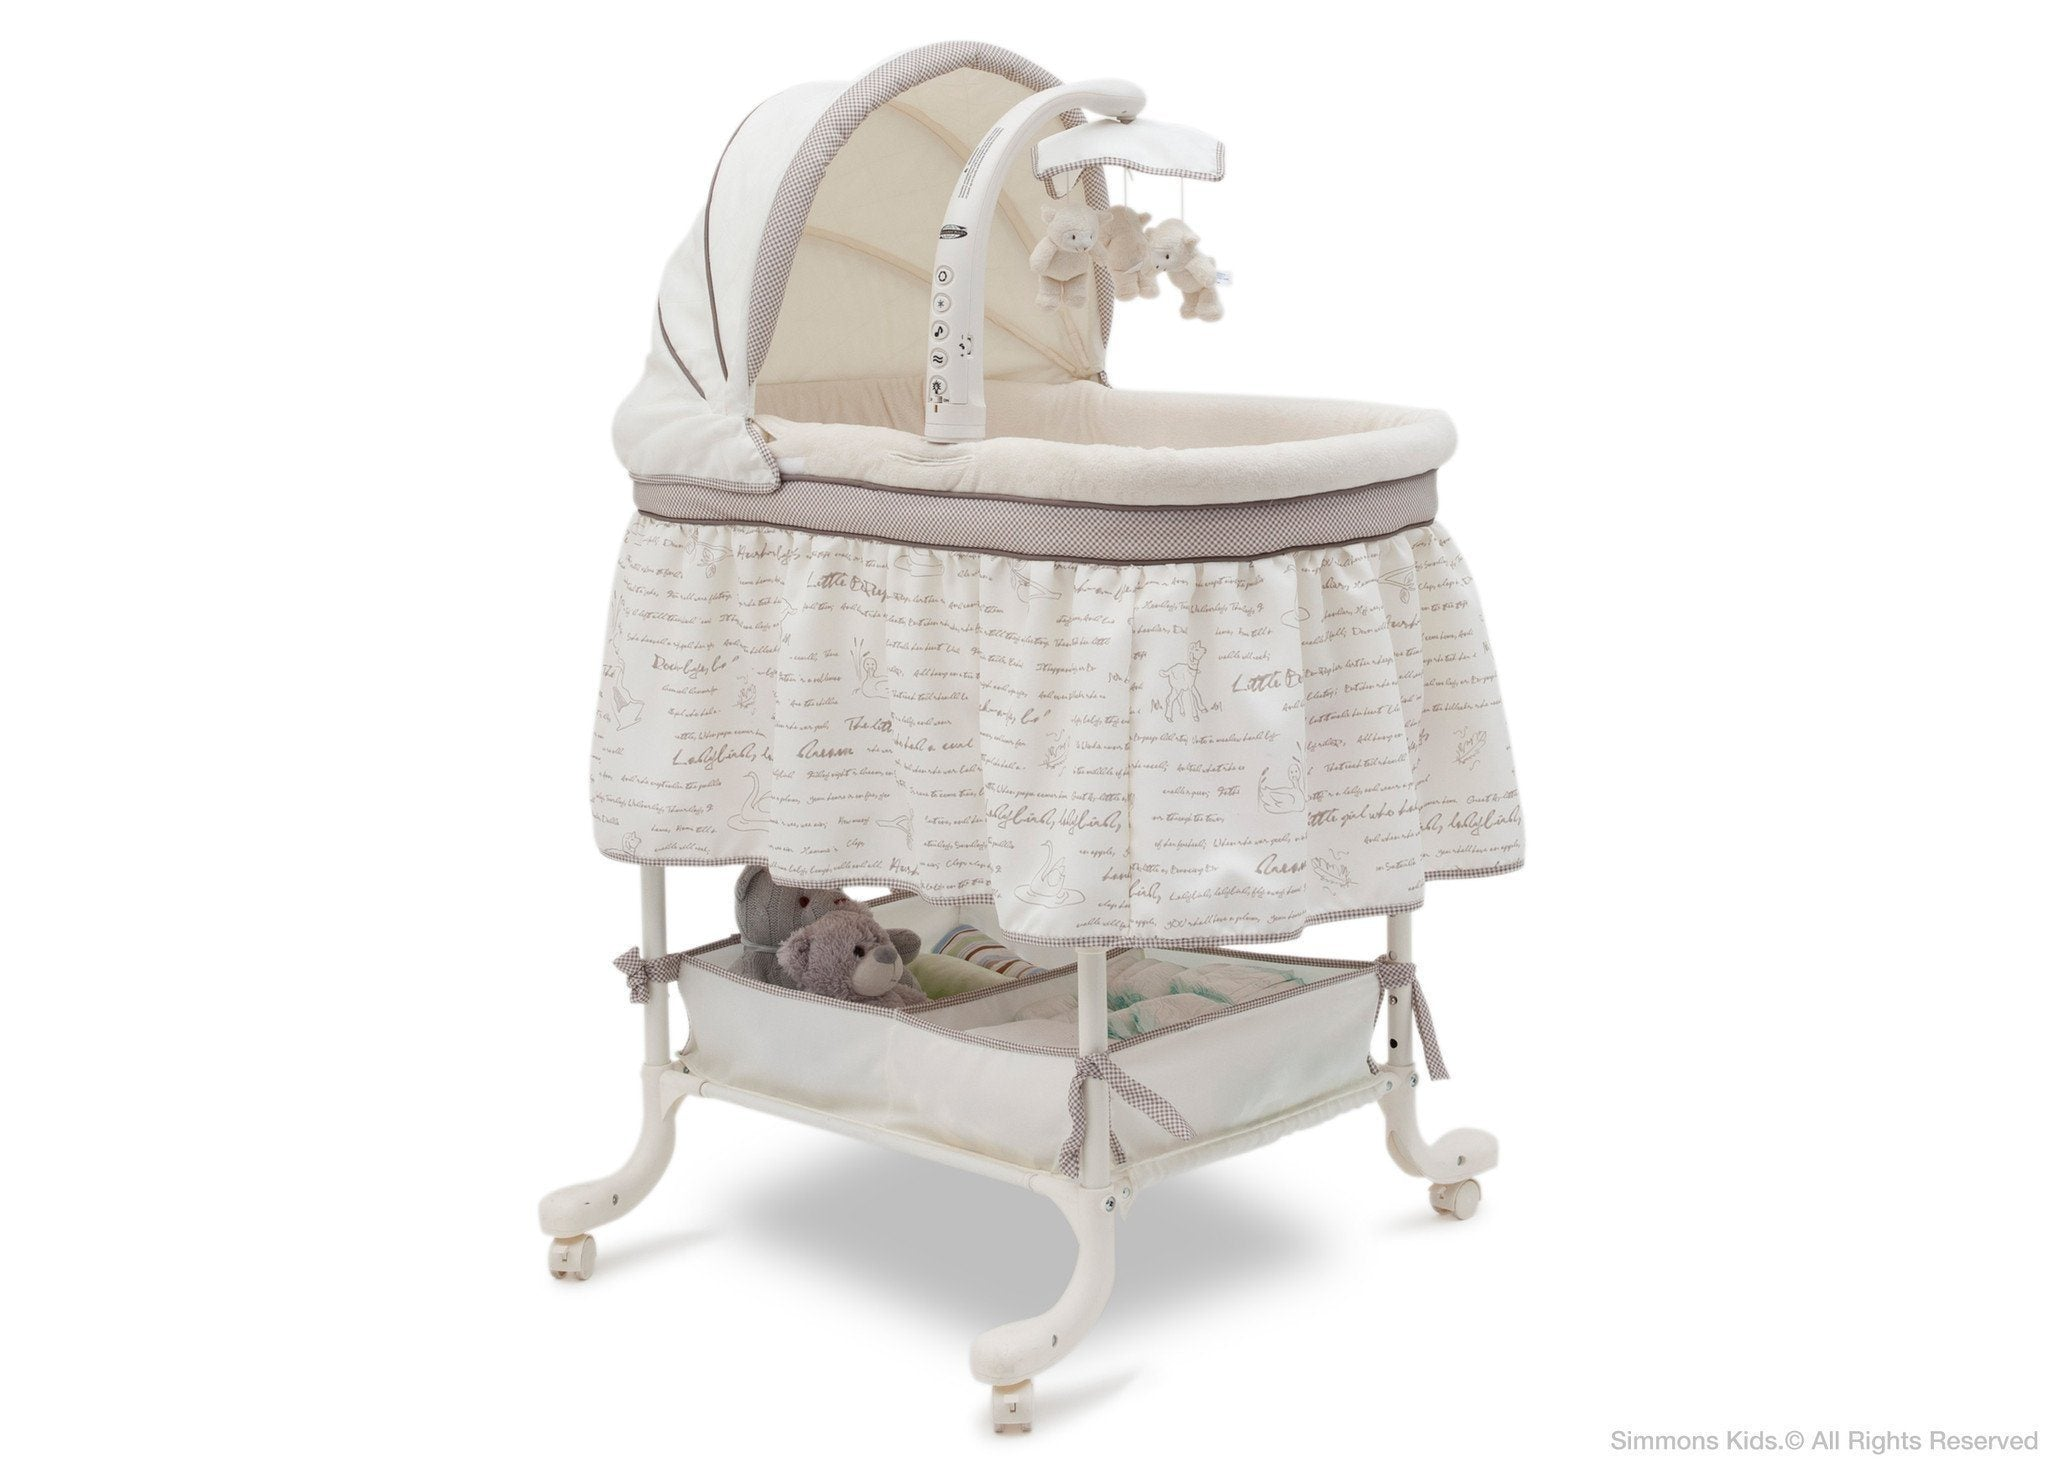 Simmons Kids Nursery Rhyme (172) Deluxe Gliding Bassinet Right View b1b